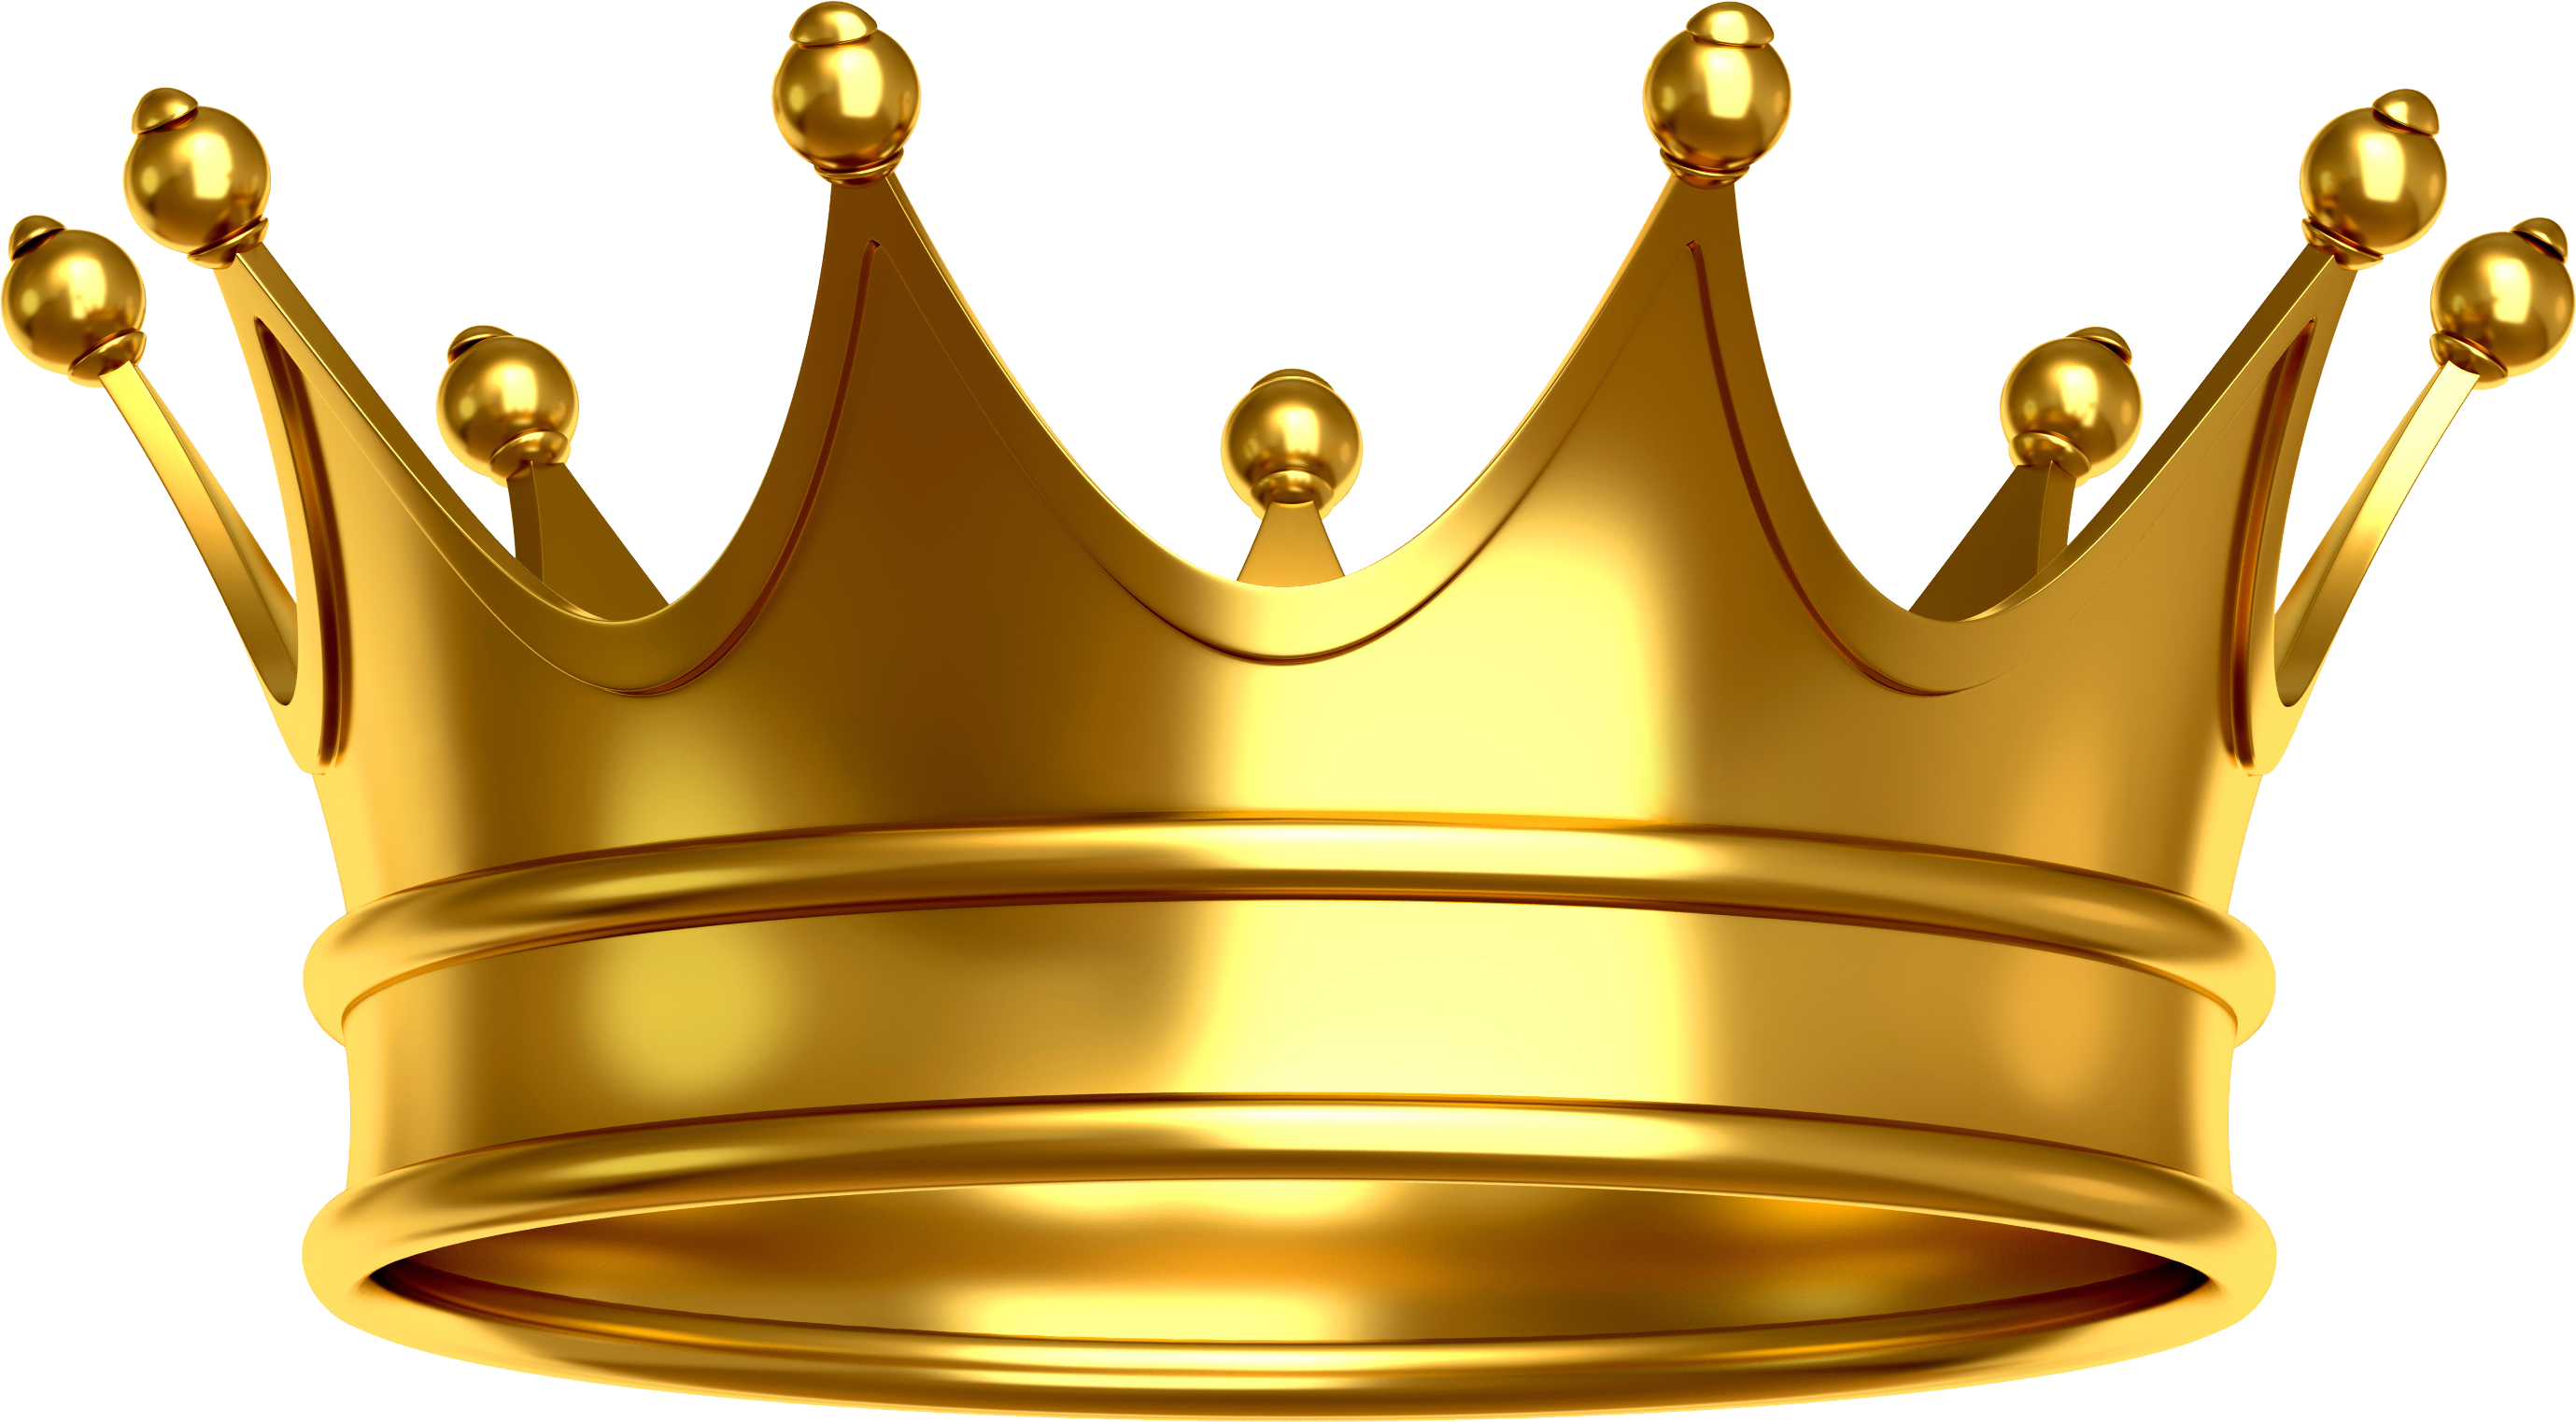 Gold Crown | King crown images, Gold, Crown png